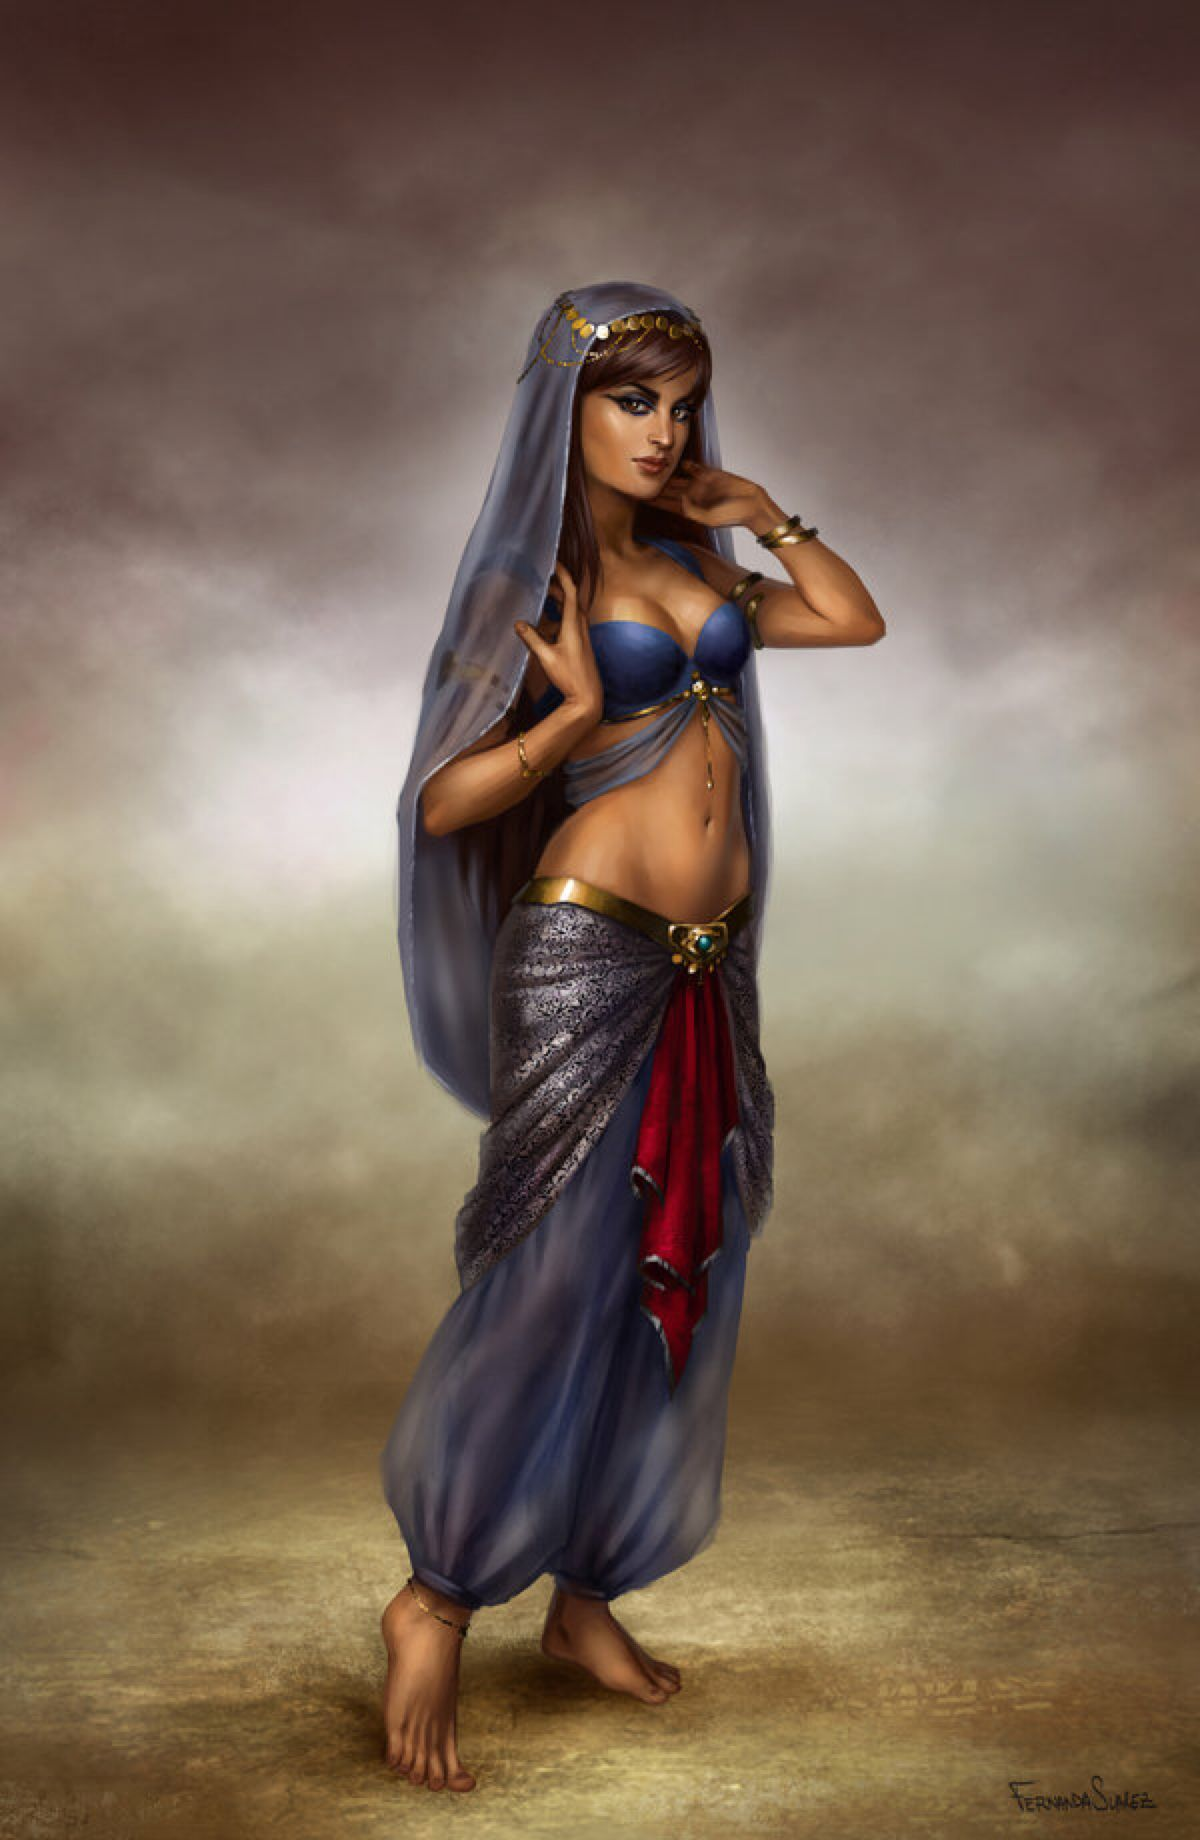 pinkhalid on arabic art | pinterest | deviantart, arabian women